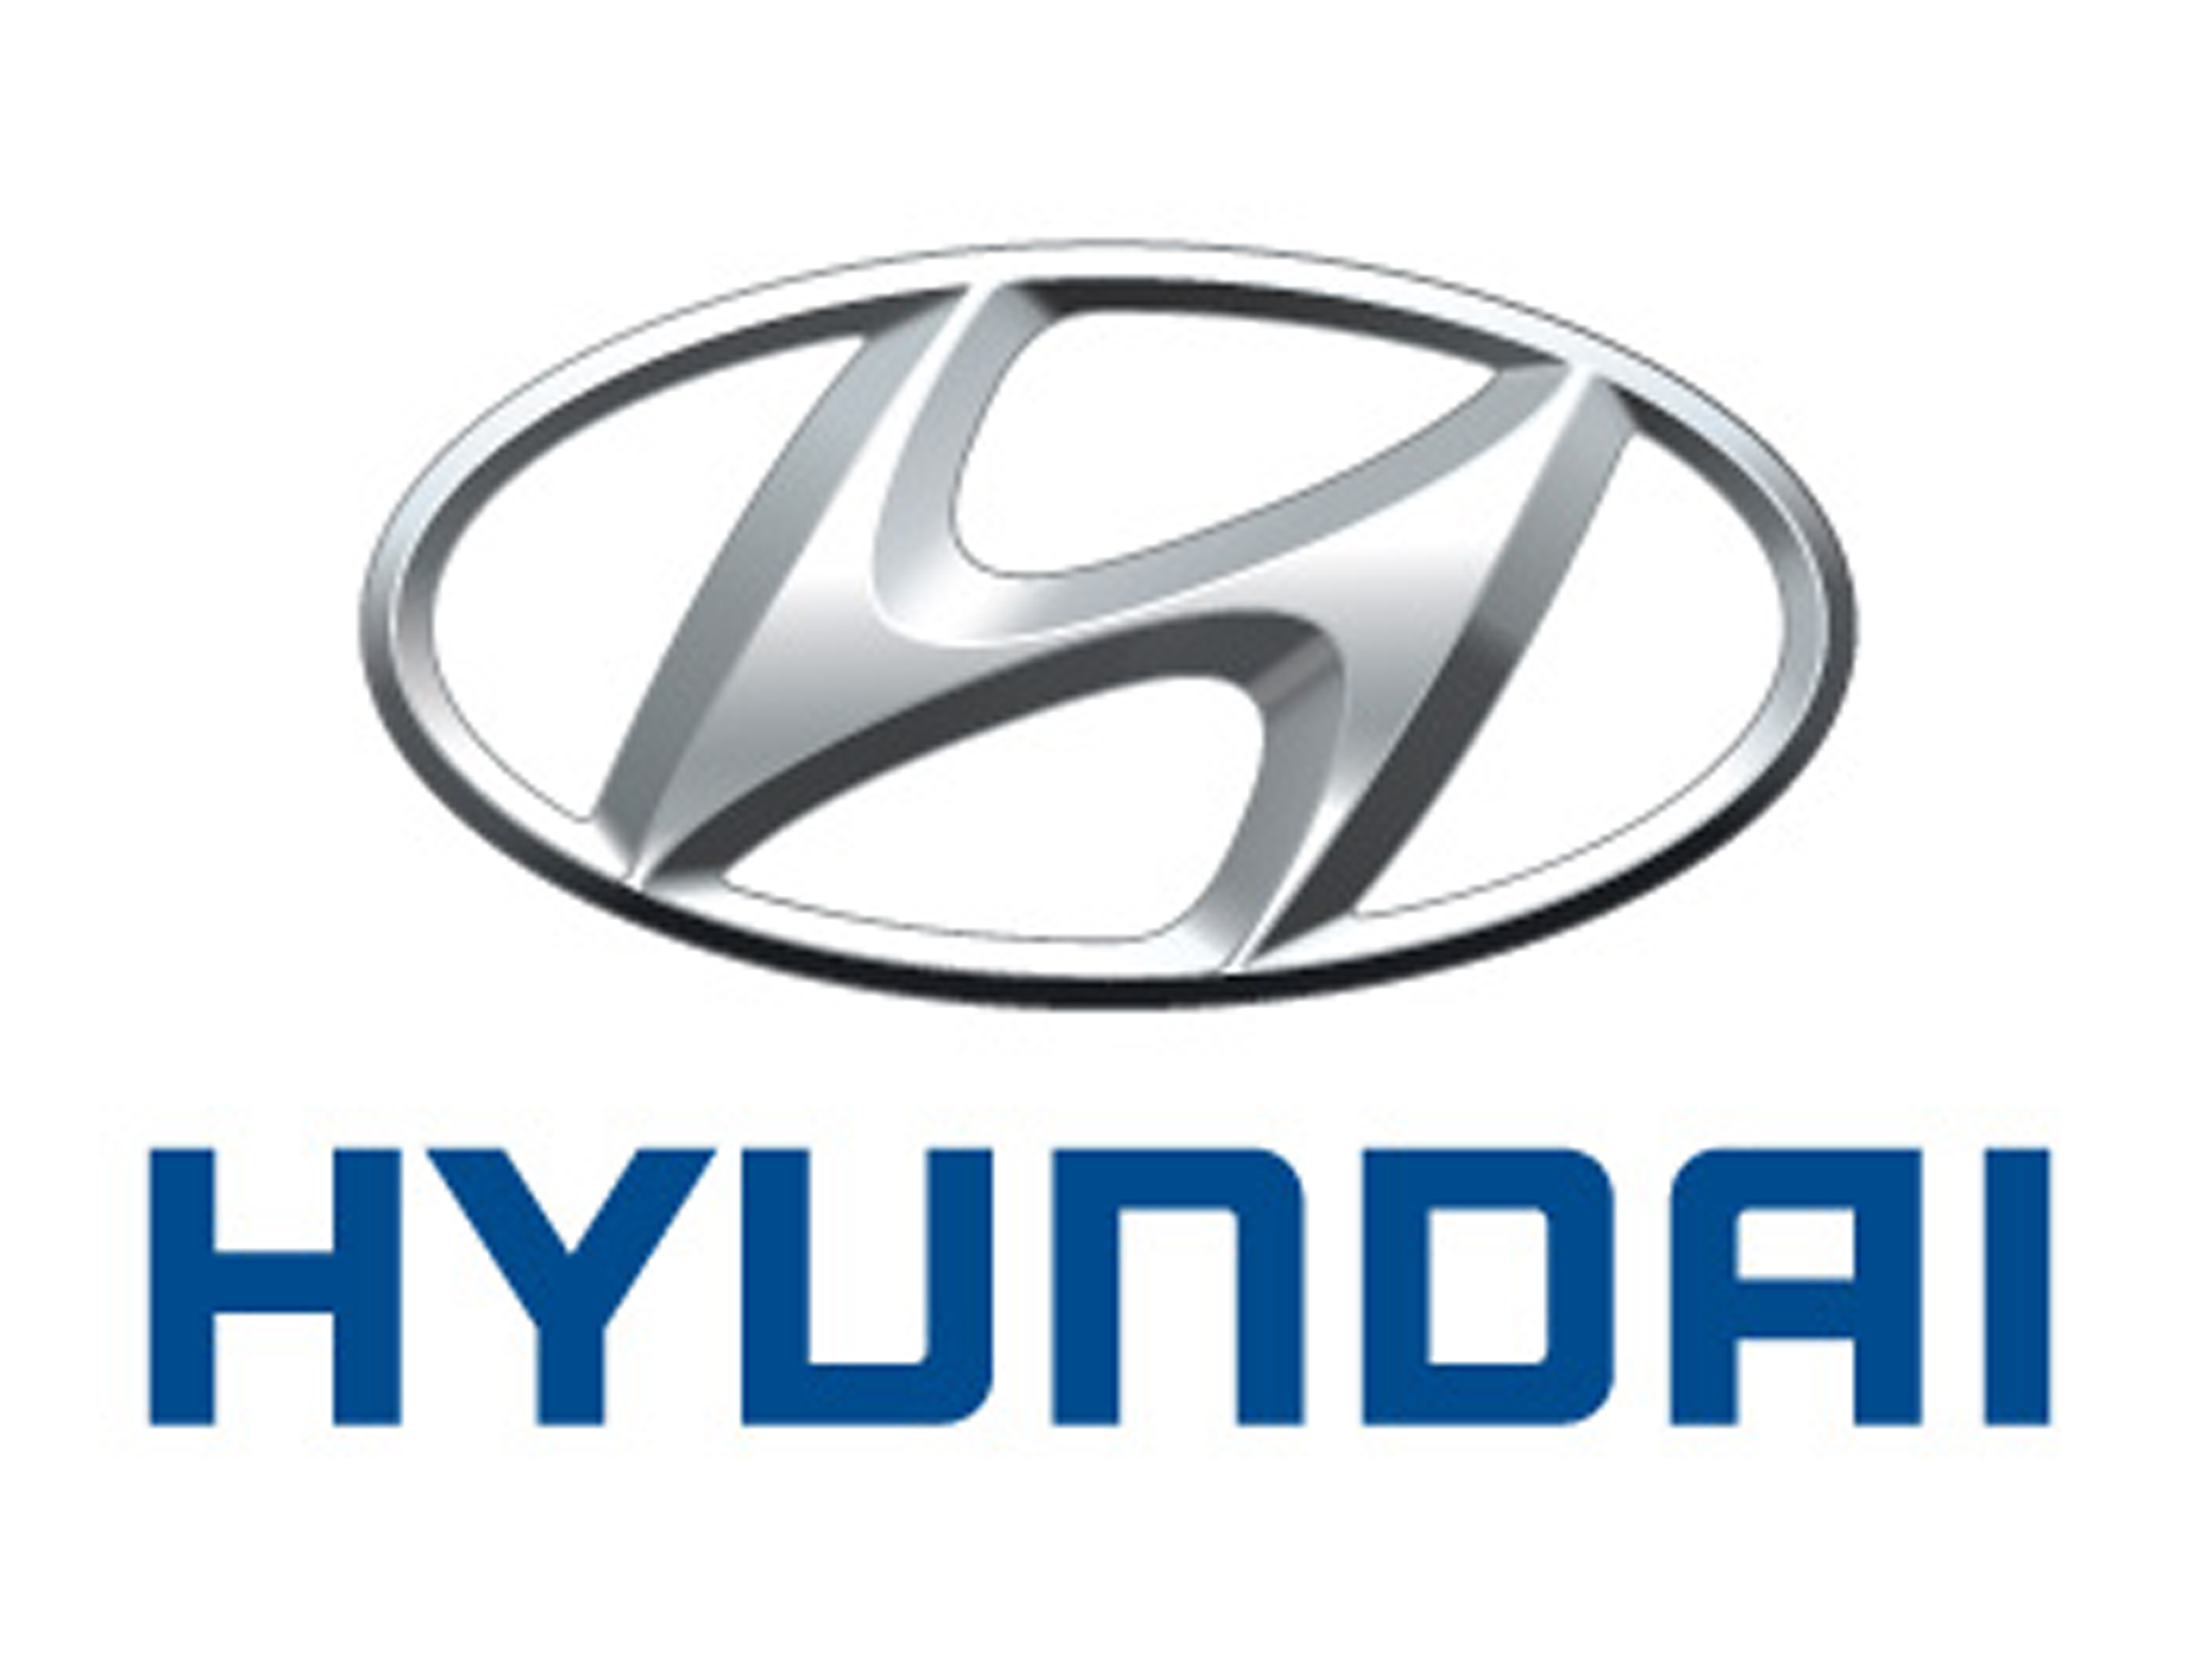 Hyundai Partners Bank on Credit Facility